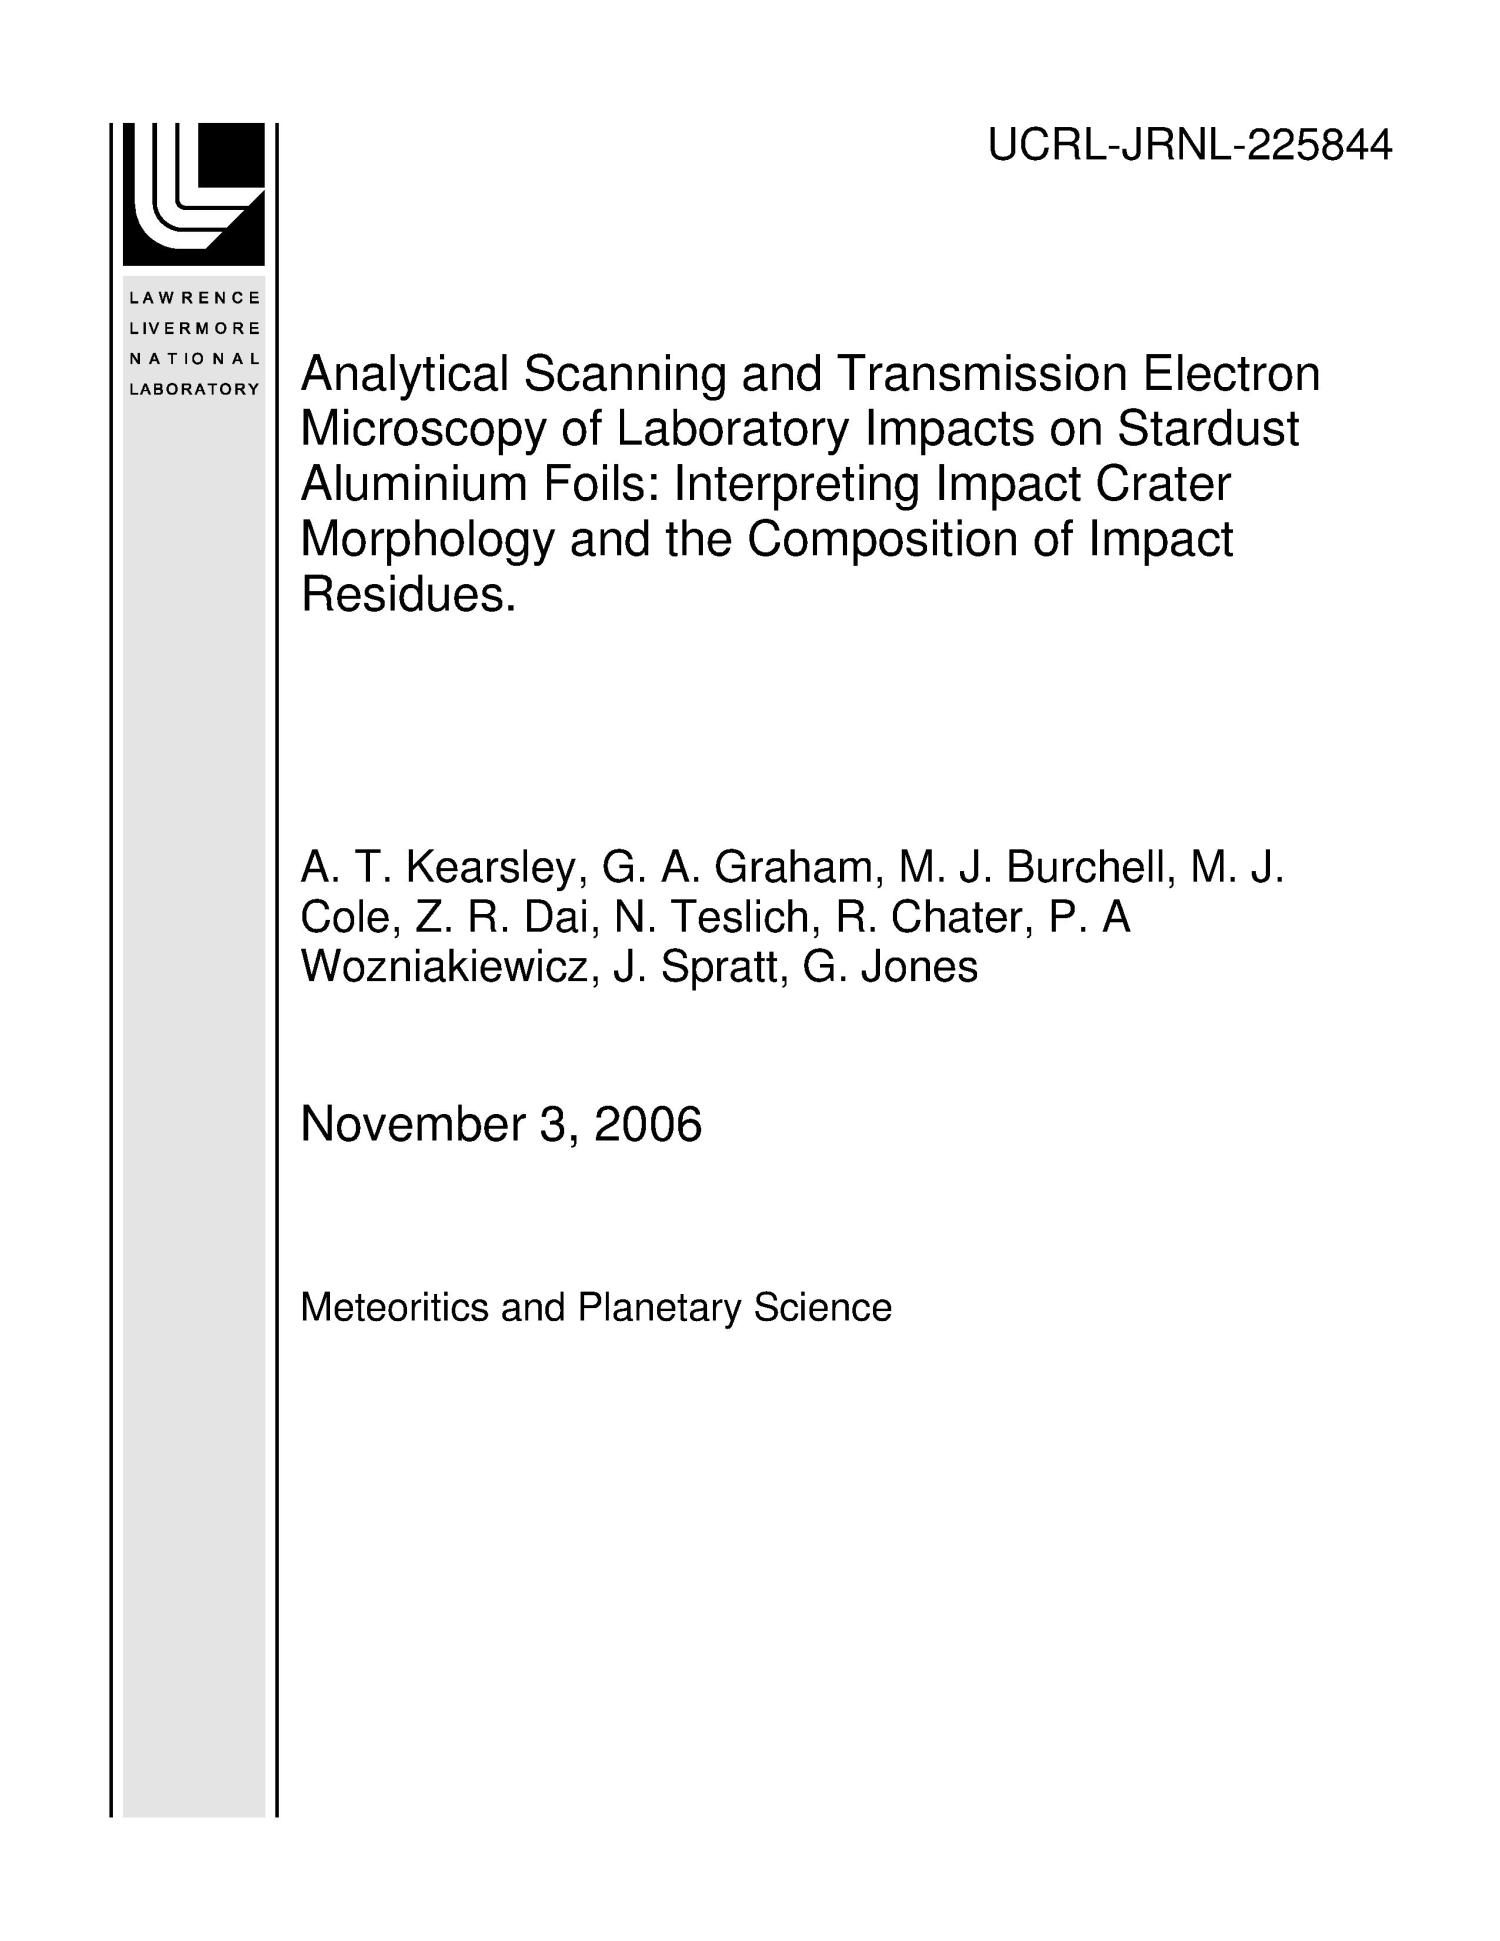 Analytical Scanning and Transmission Electron Microscopy of Laboratory Impacts on Stardust Aluminium Foils: Interpreting Impact Crater Morphology and the Composition of Impact Residues.                                                                                                      [Sequence #]: 1 of 31